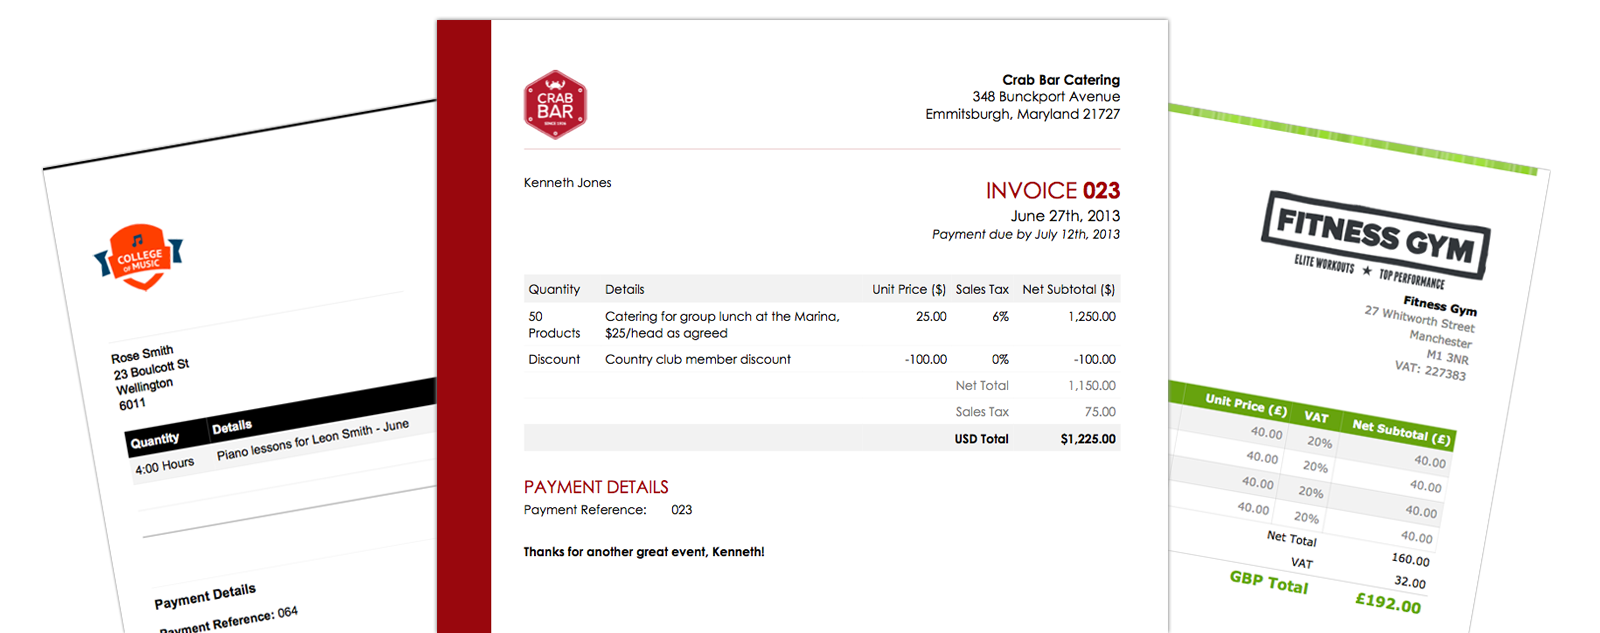 Forex invoice sample